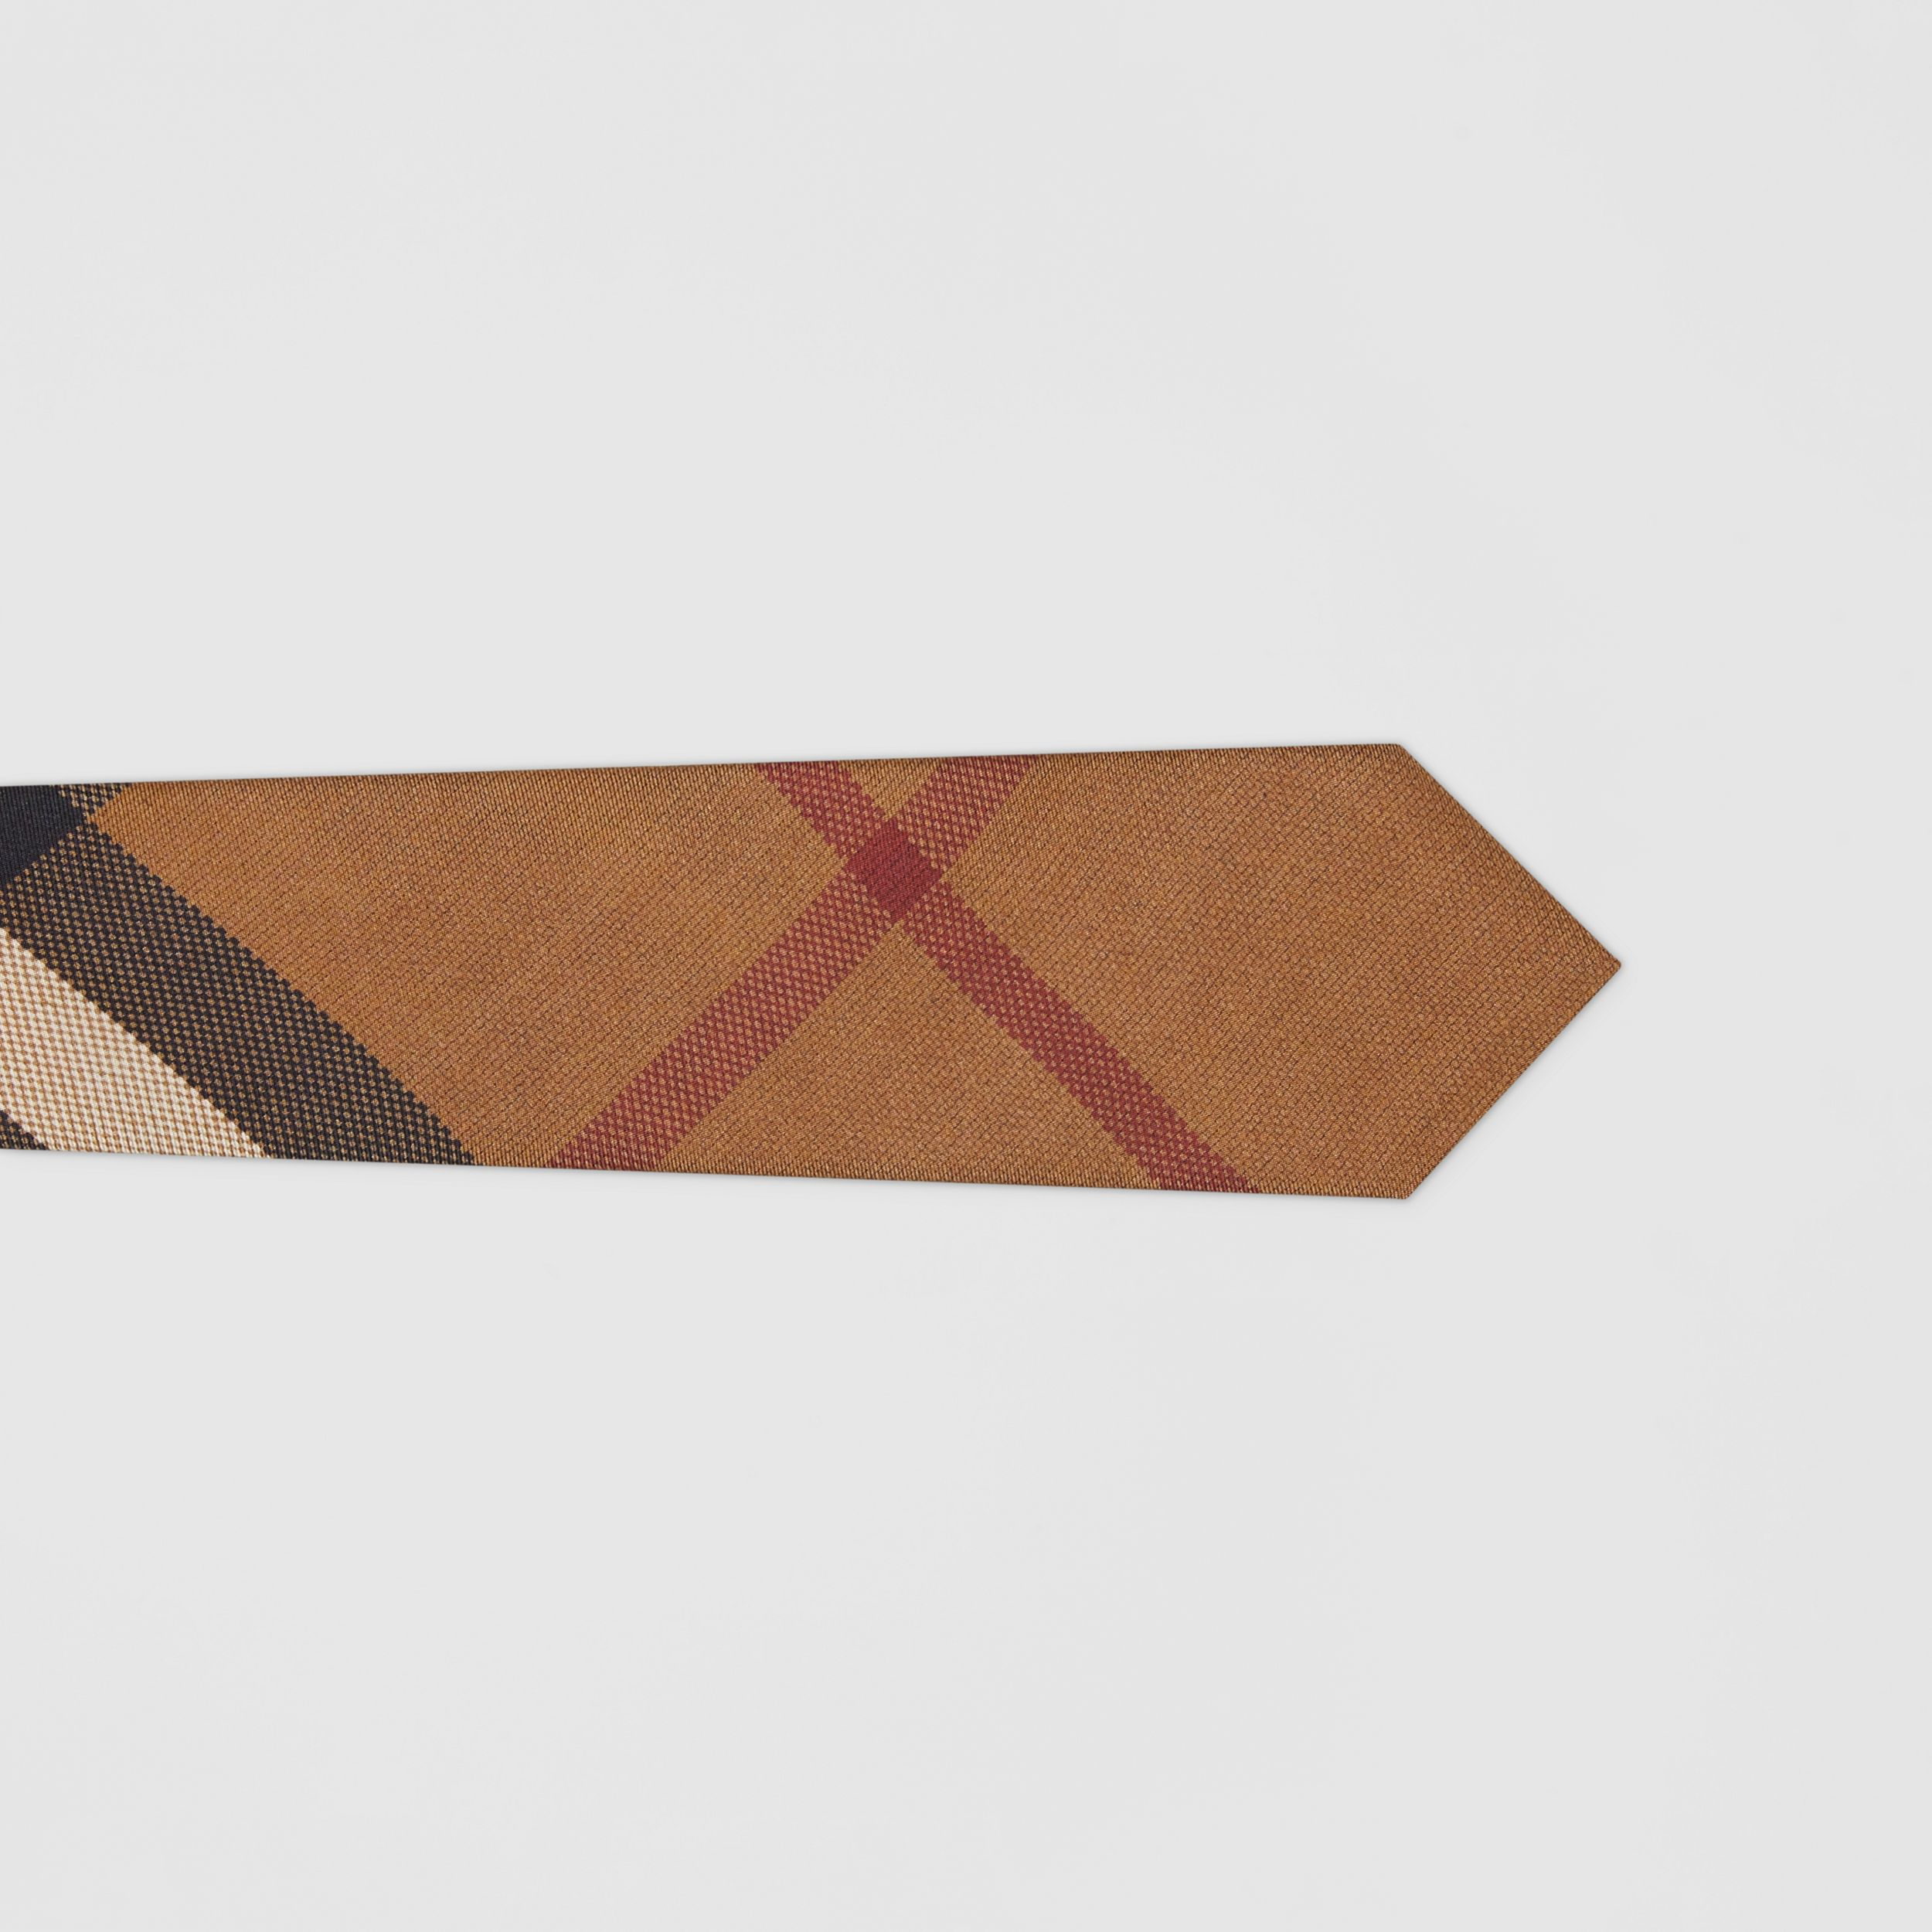 Classic Cut Check Silk Jacquard Tie in Birch Brown - Men | Burberry - 2